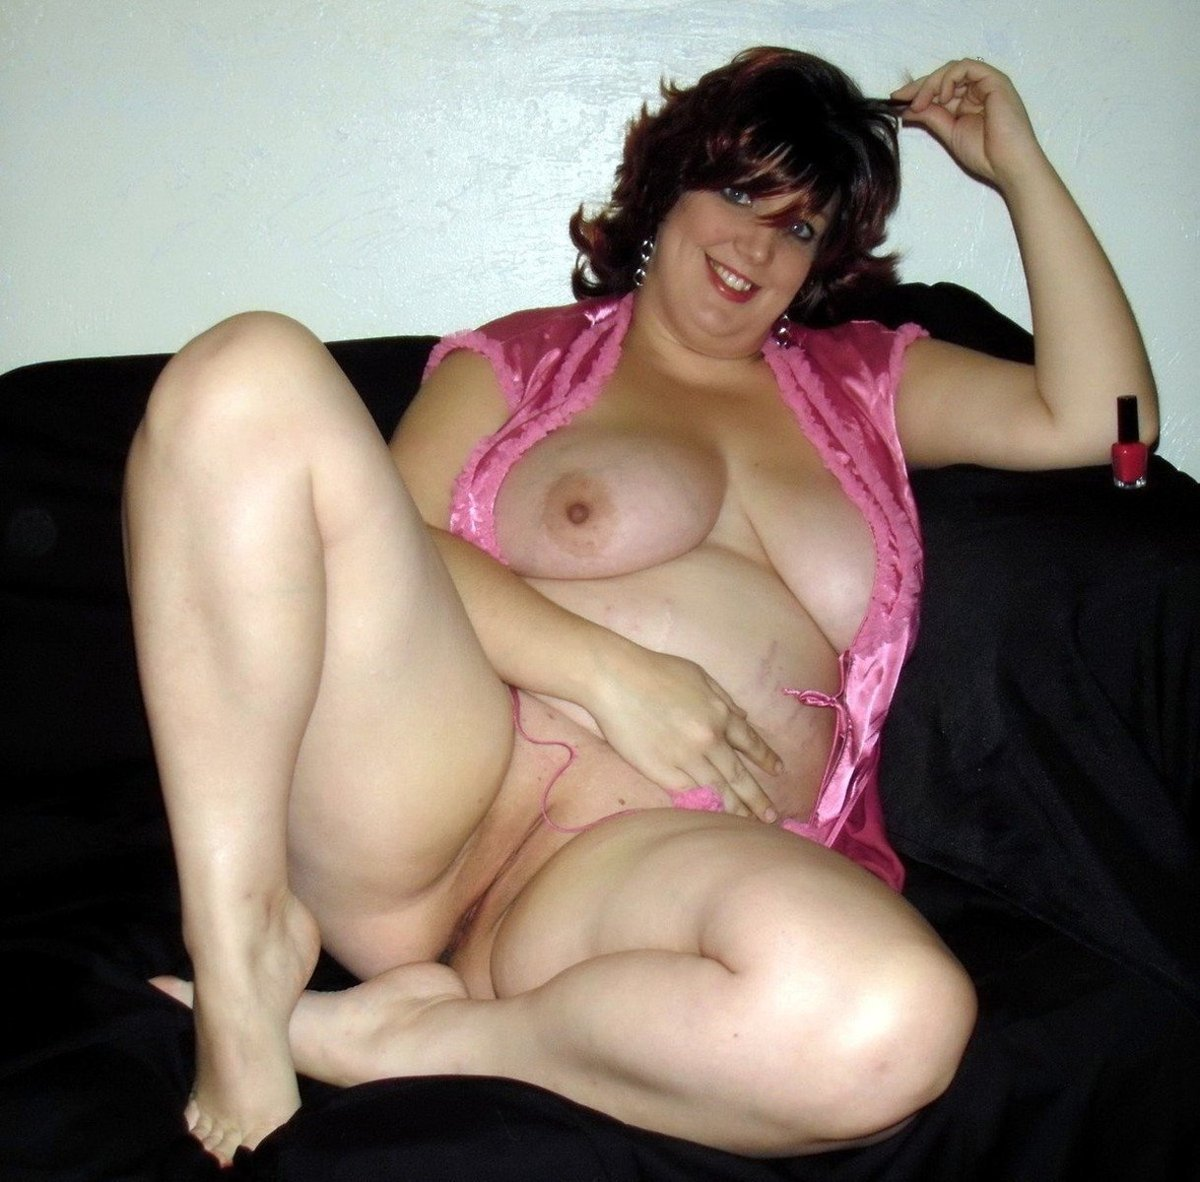 image 50 plus mature is a true fuckdoll